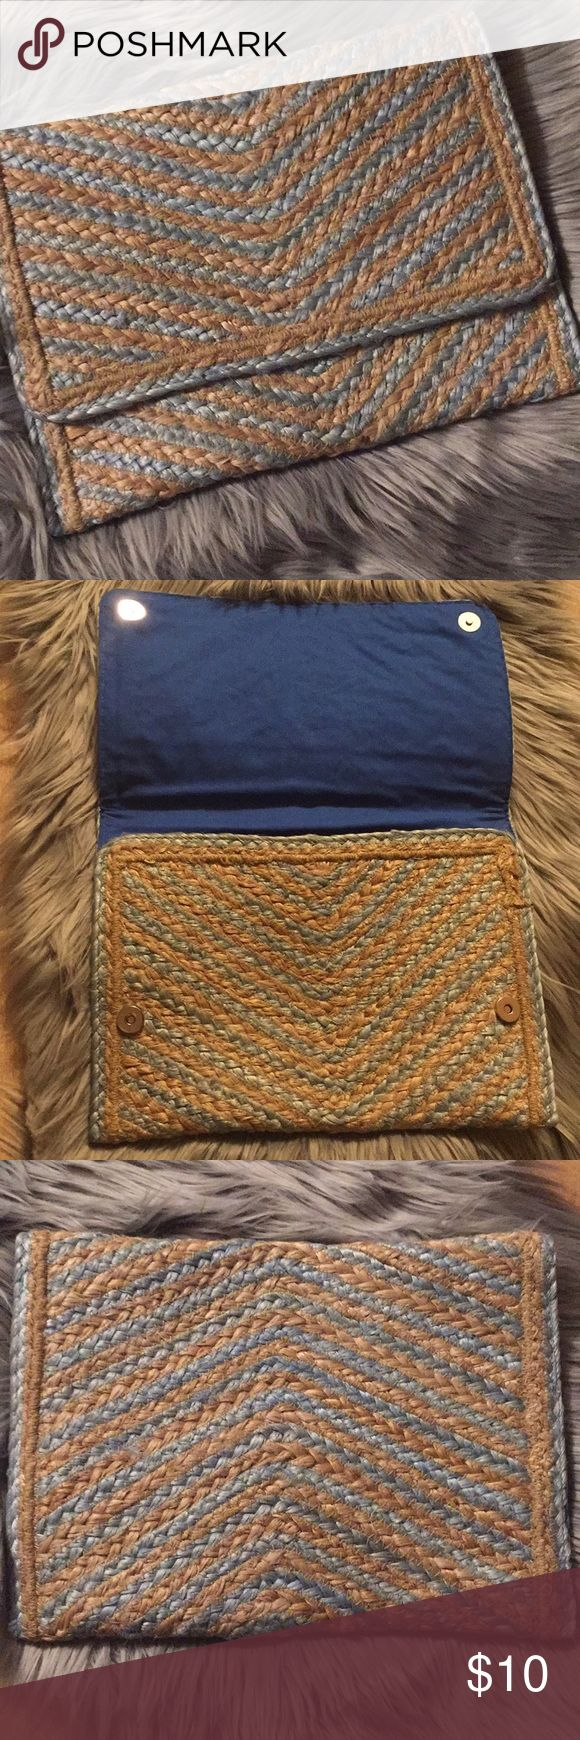 ⚠️Clearance‼️Jute sample bag This is a cute clutch bag that can be used as an on the go clutch bag or a tablet bag! Jute, a natural fiber. Royal blue interior cotton lining. none Bags Clutches & Wristlets